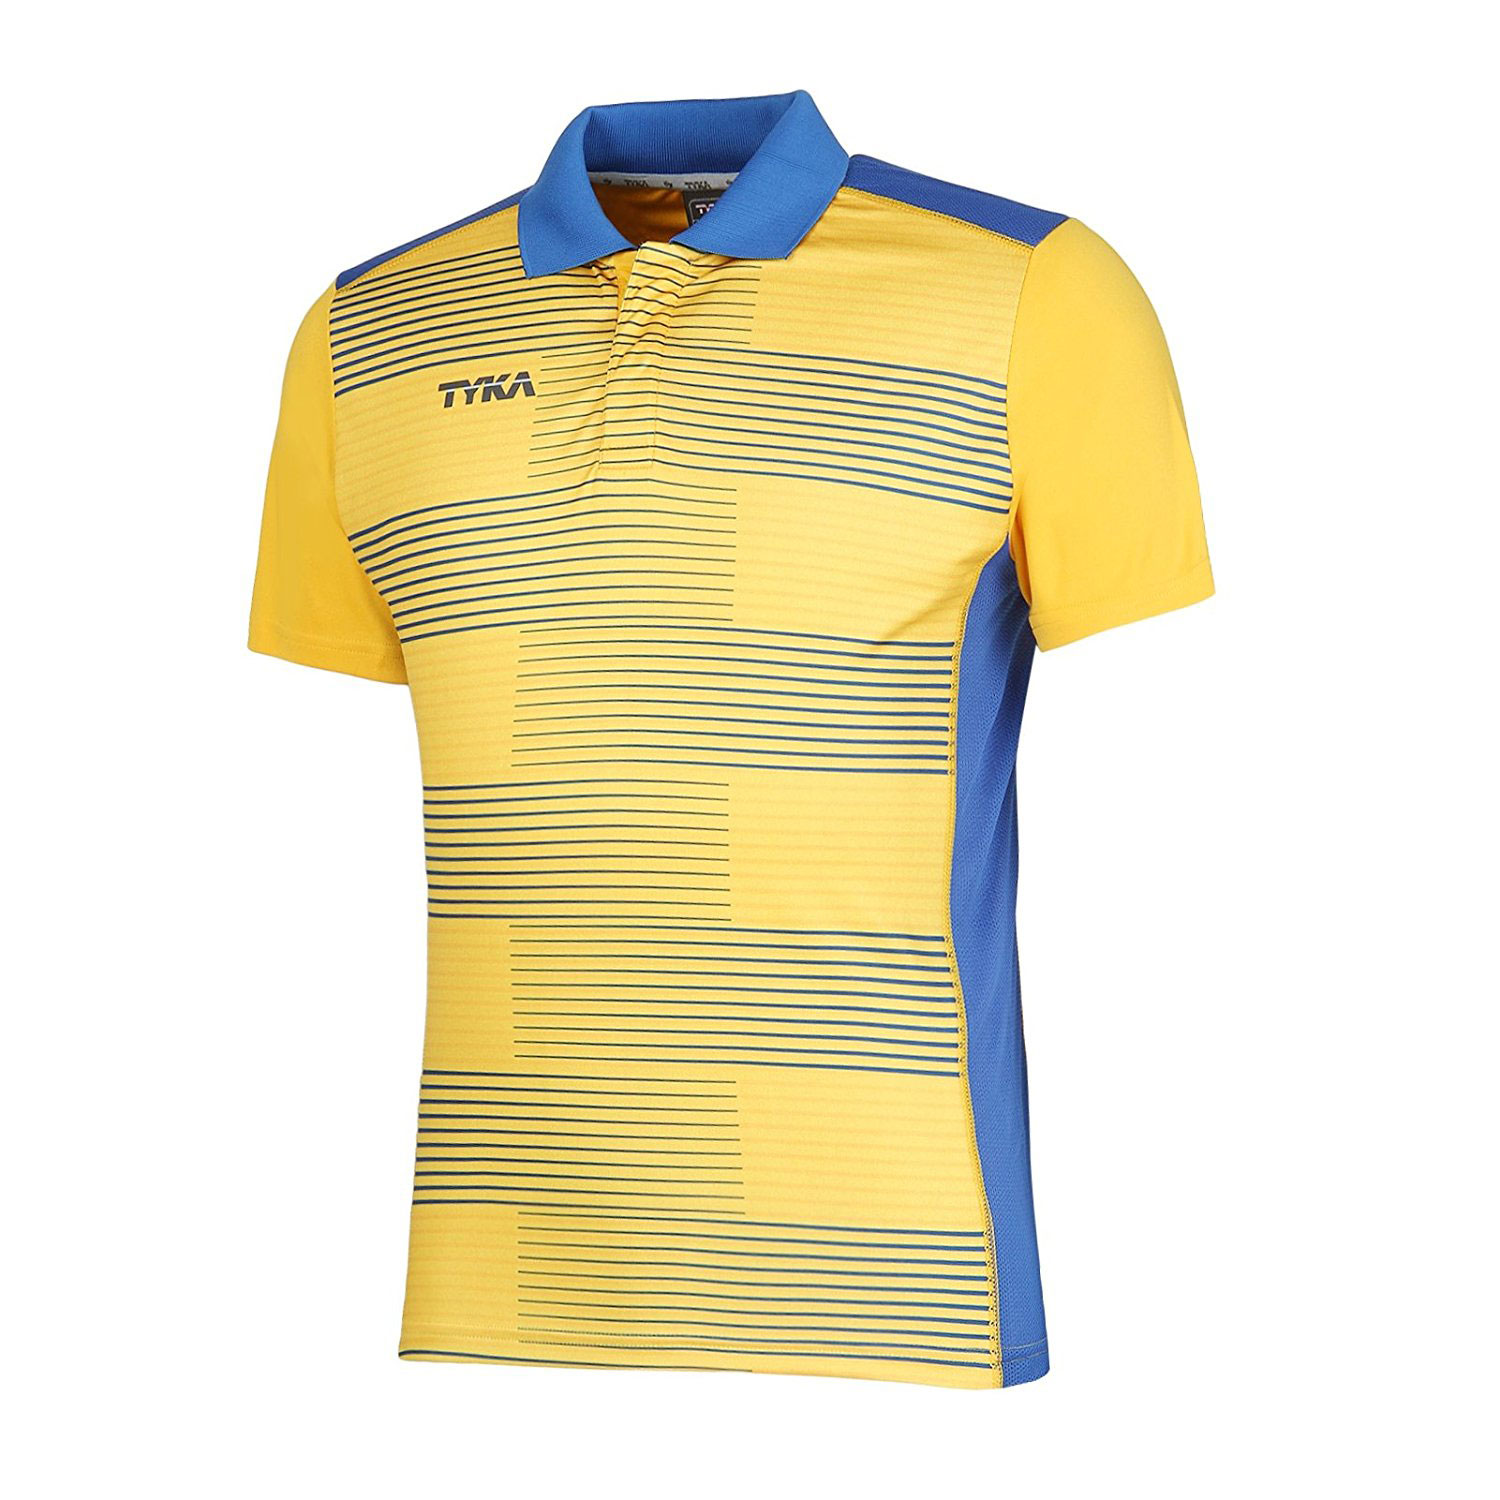 MOMENTUM Polo ( For Game / Training )